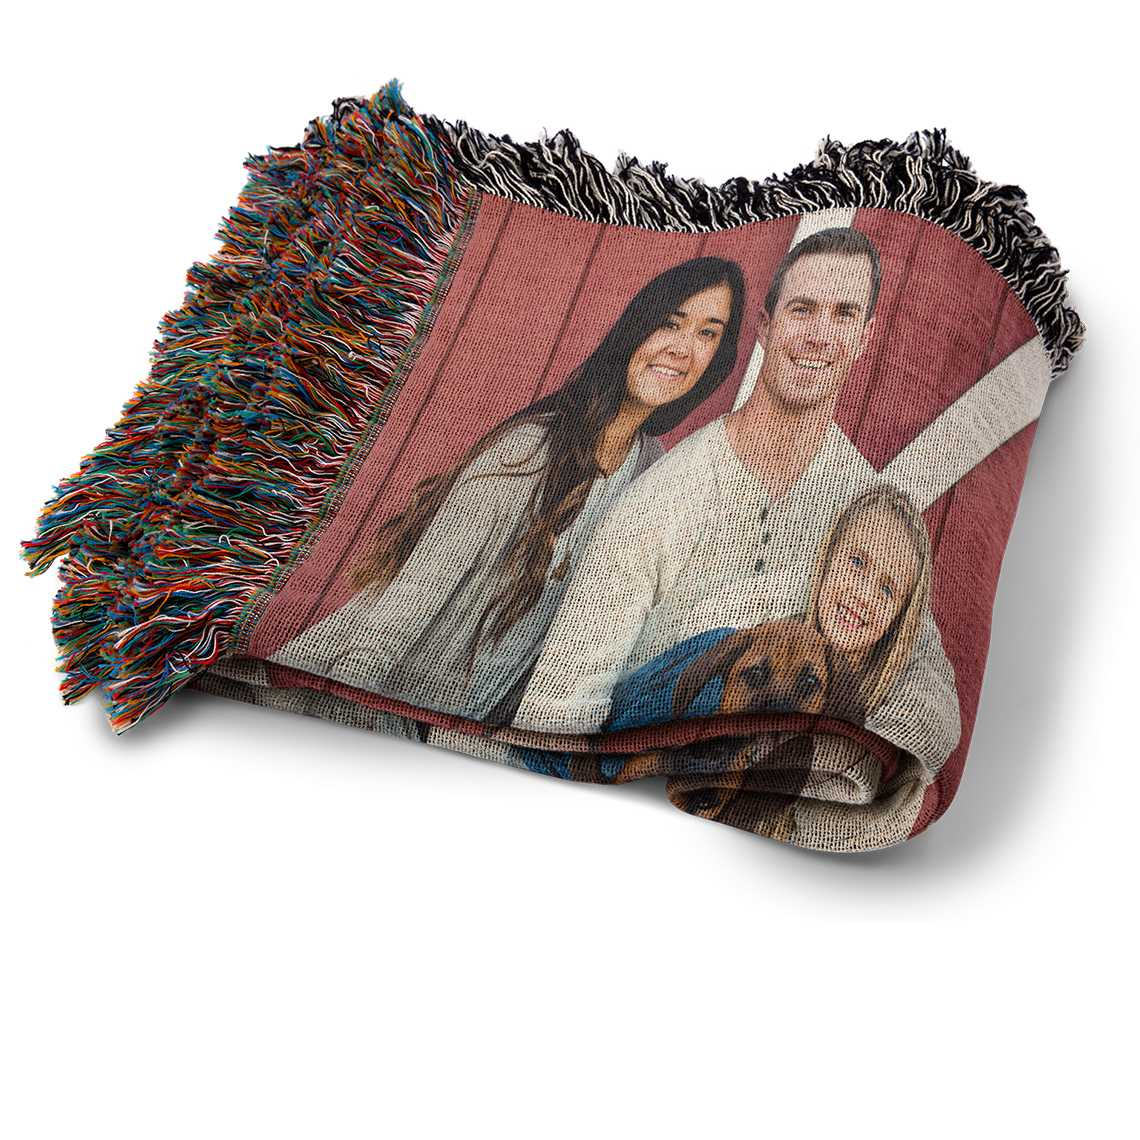 woven blanket 50x60 woven photo blanket blankets and pillows